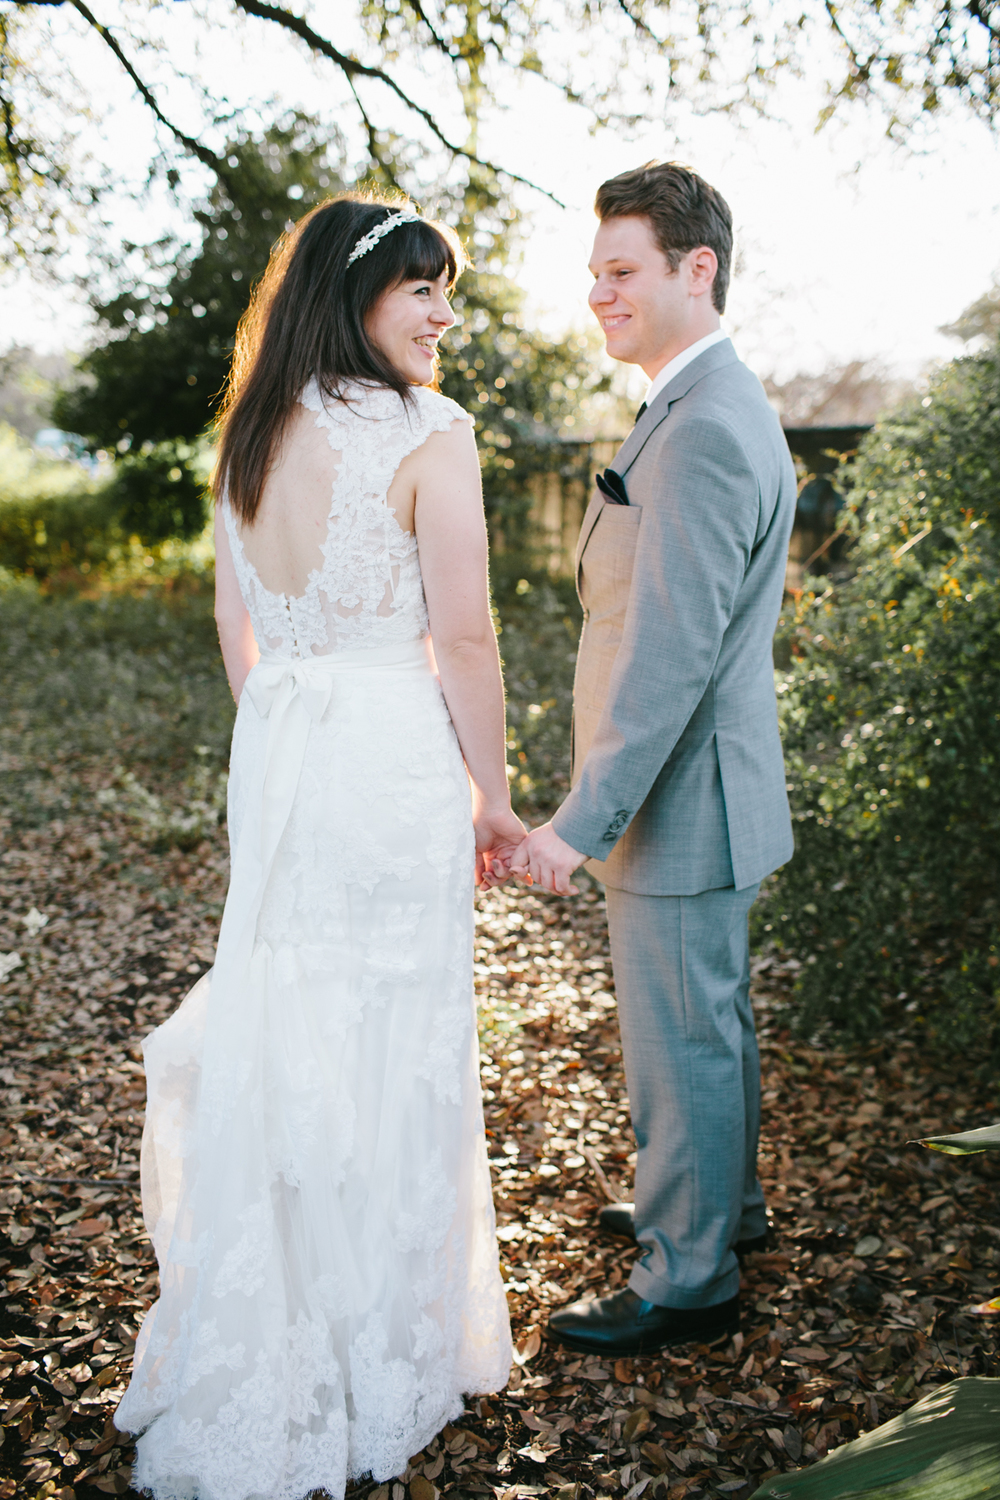 erika_wedding_2015_edit (49 of 80).jpg